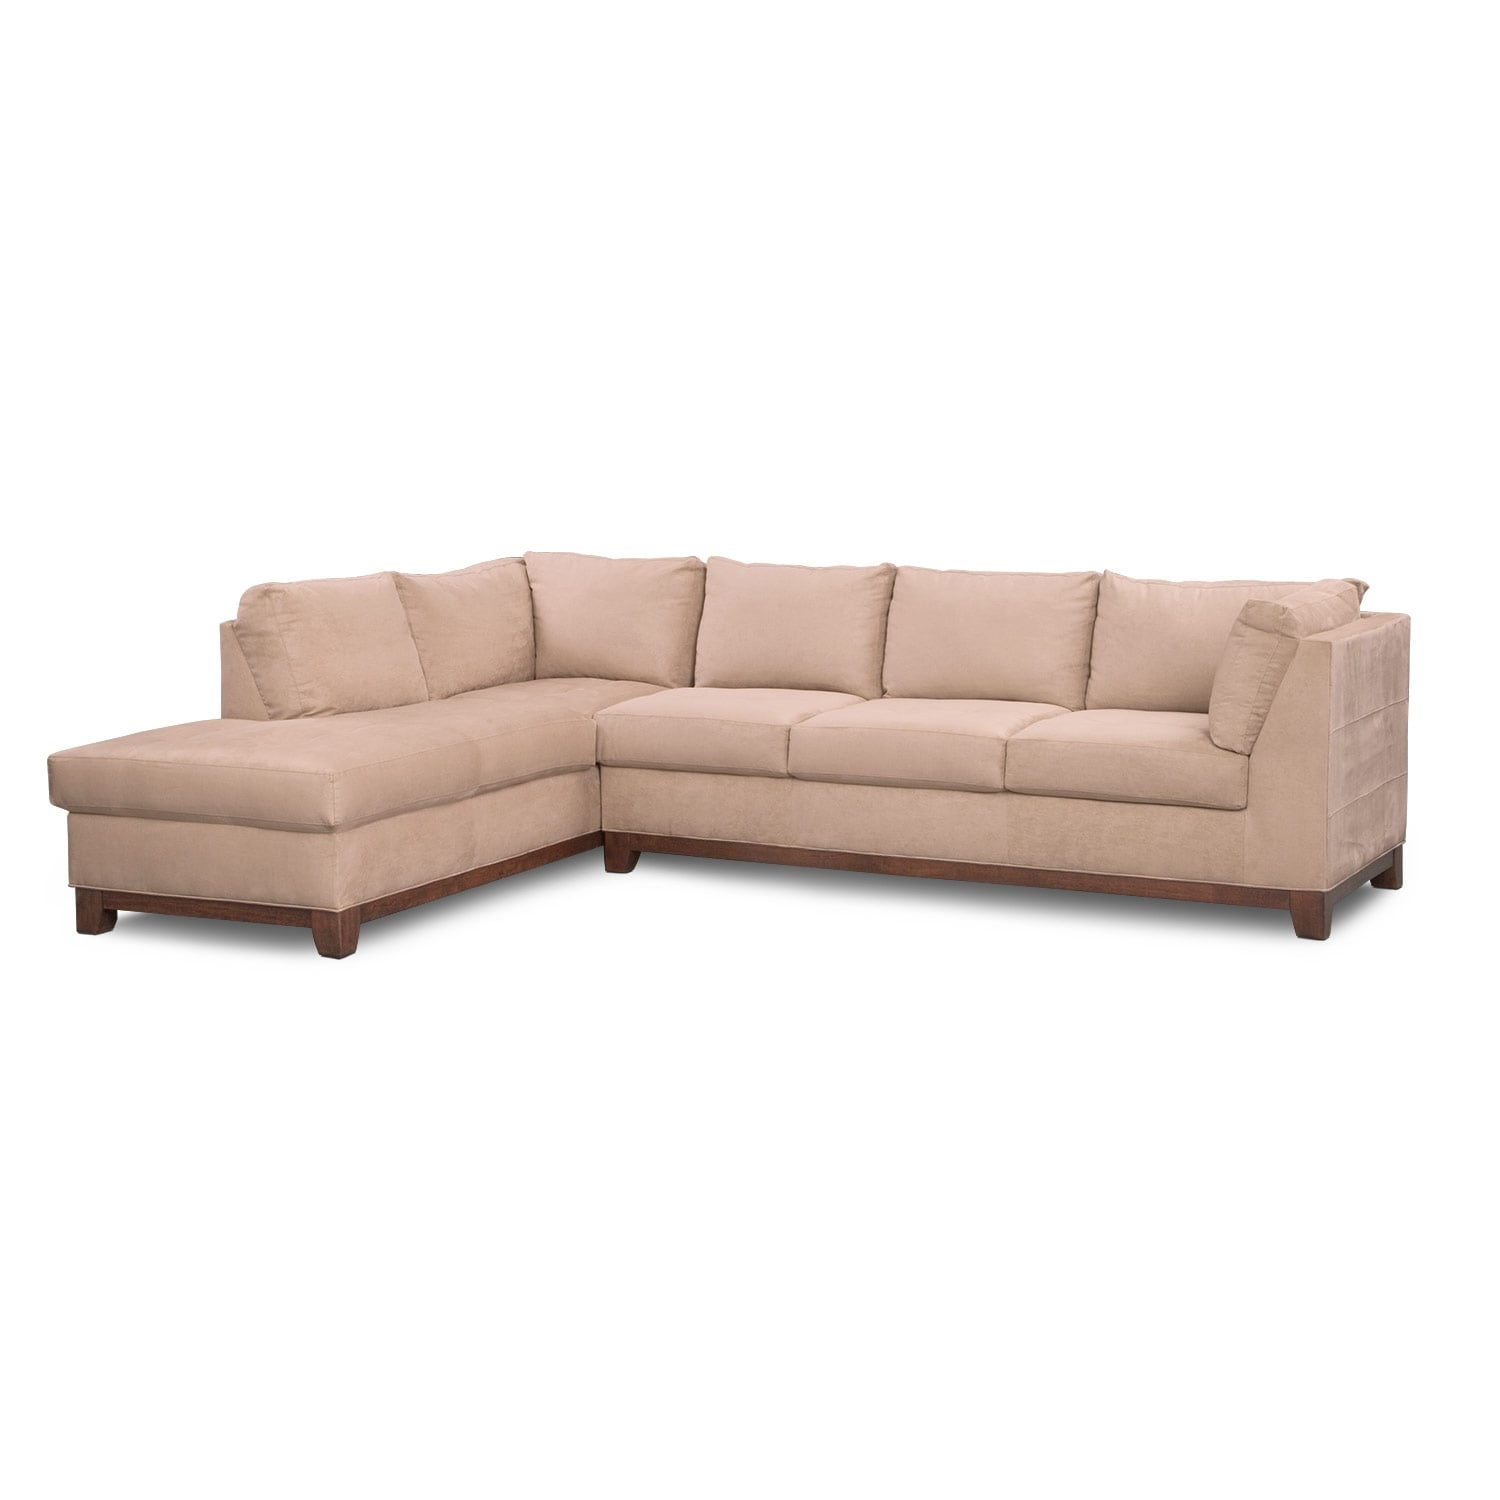 Soho 2 piece sectional with left facing chaise for Couch with 2 chaises